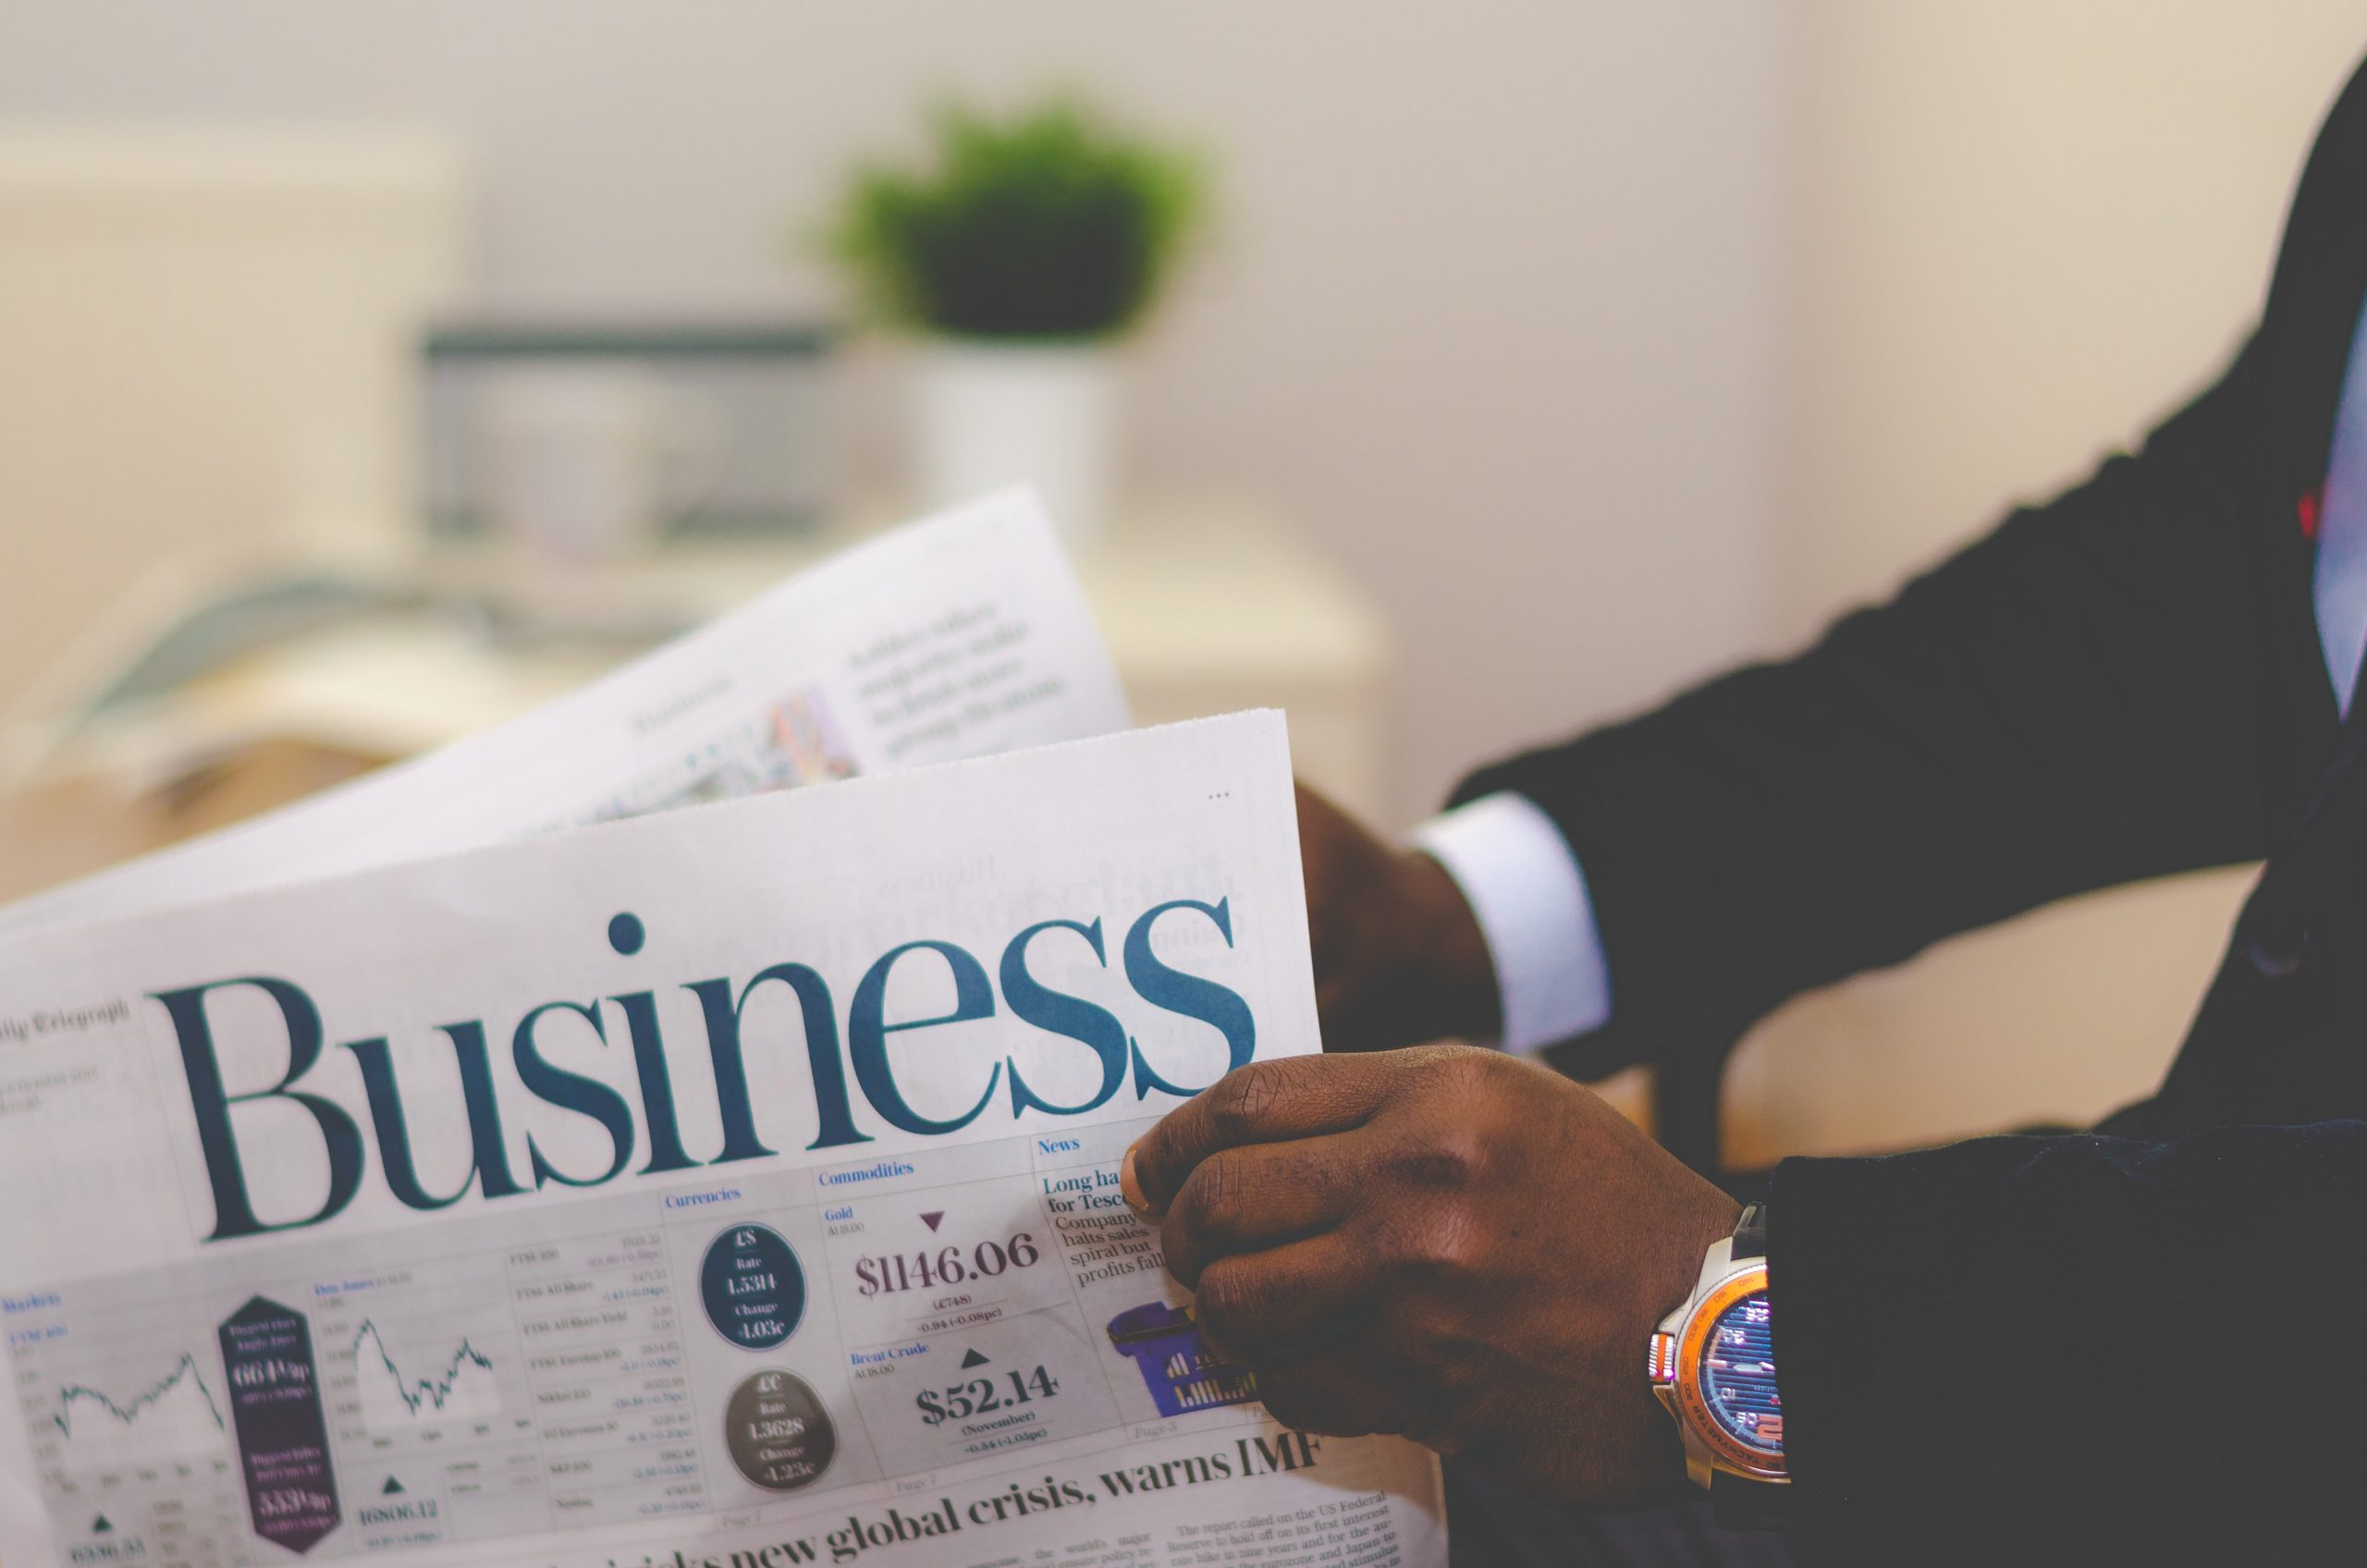 A man in a suit reading the Business magazine.